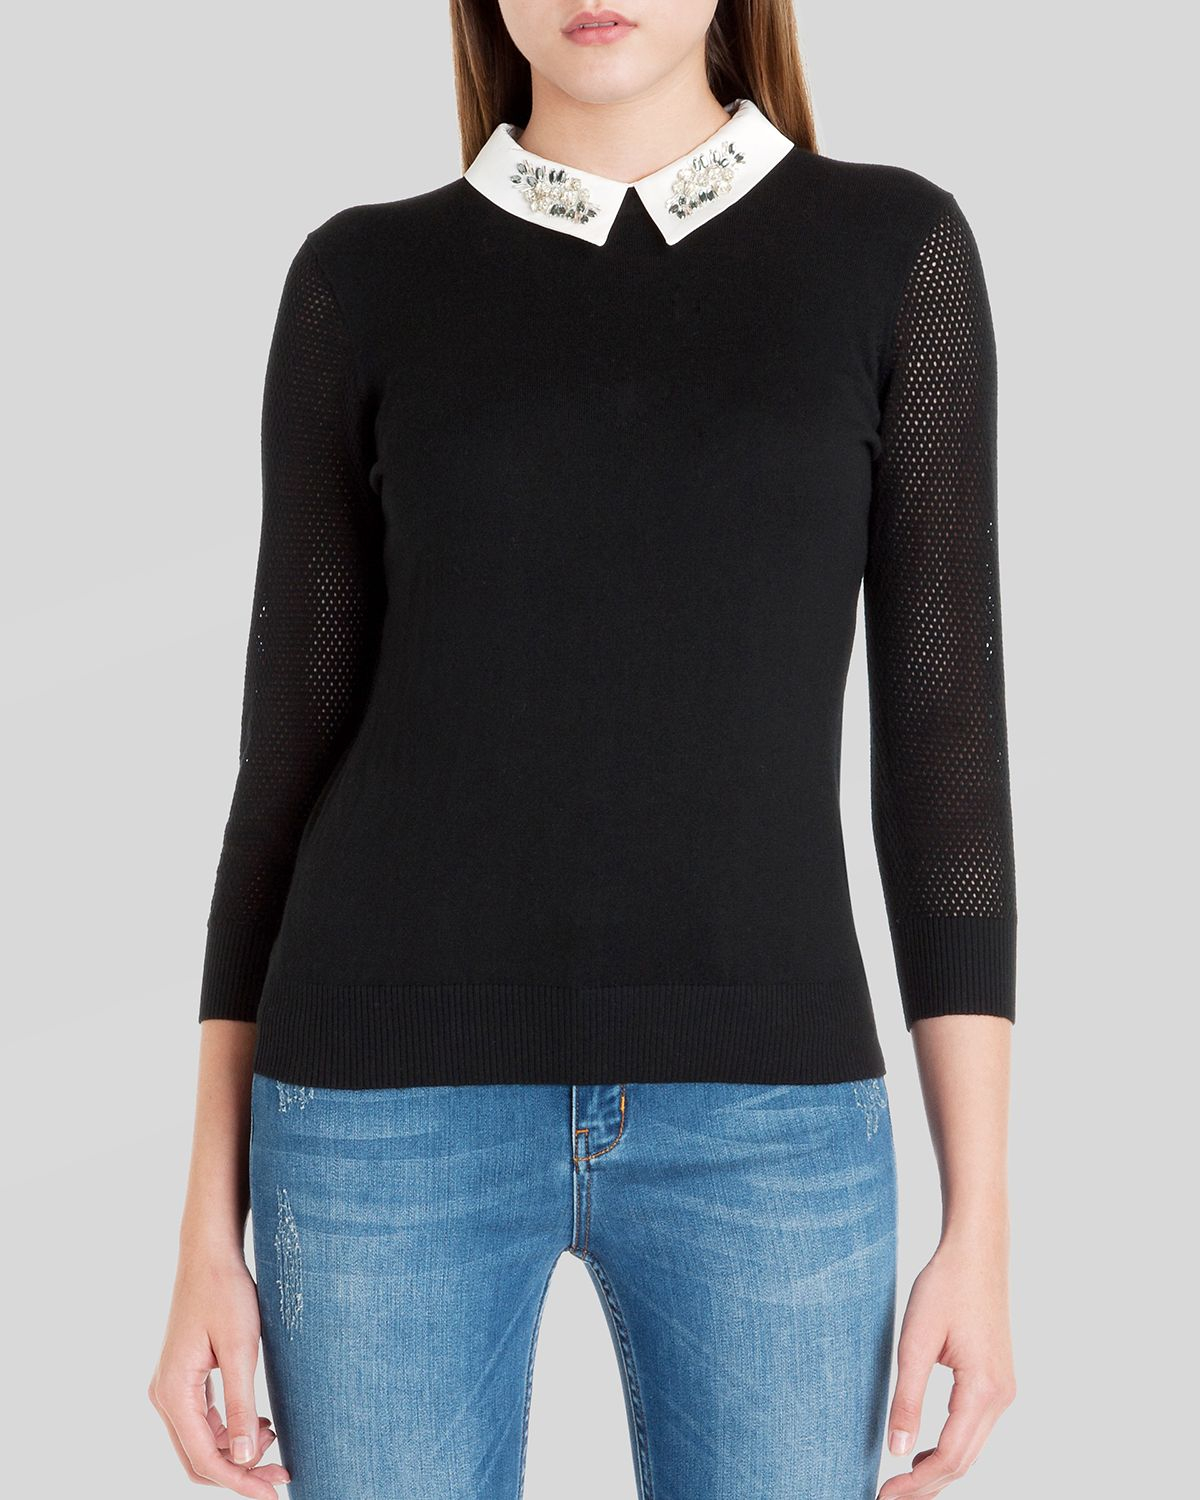 5a52be4360a Ted Baker Sweater - Helane Embellished Collar in Black - Lyst